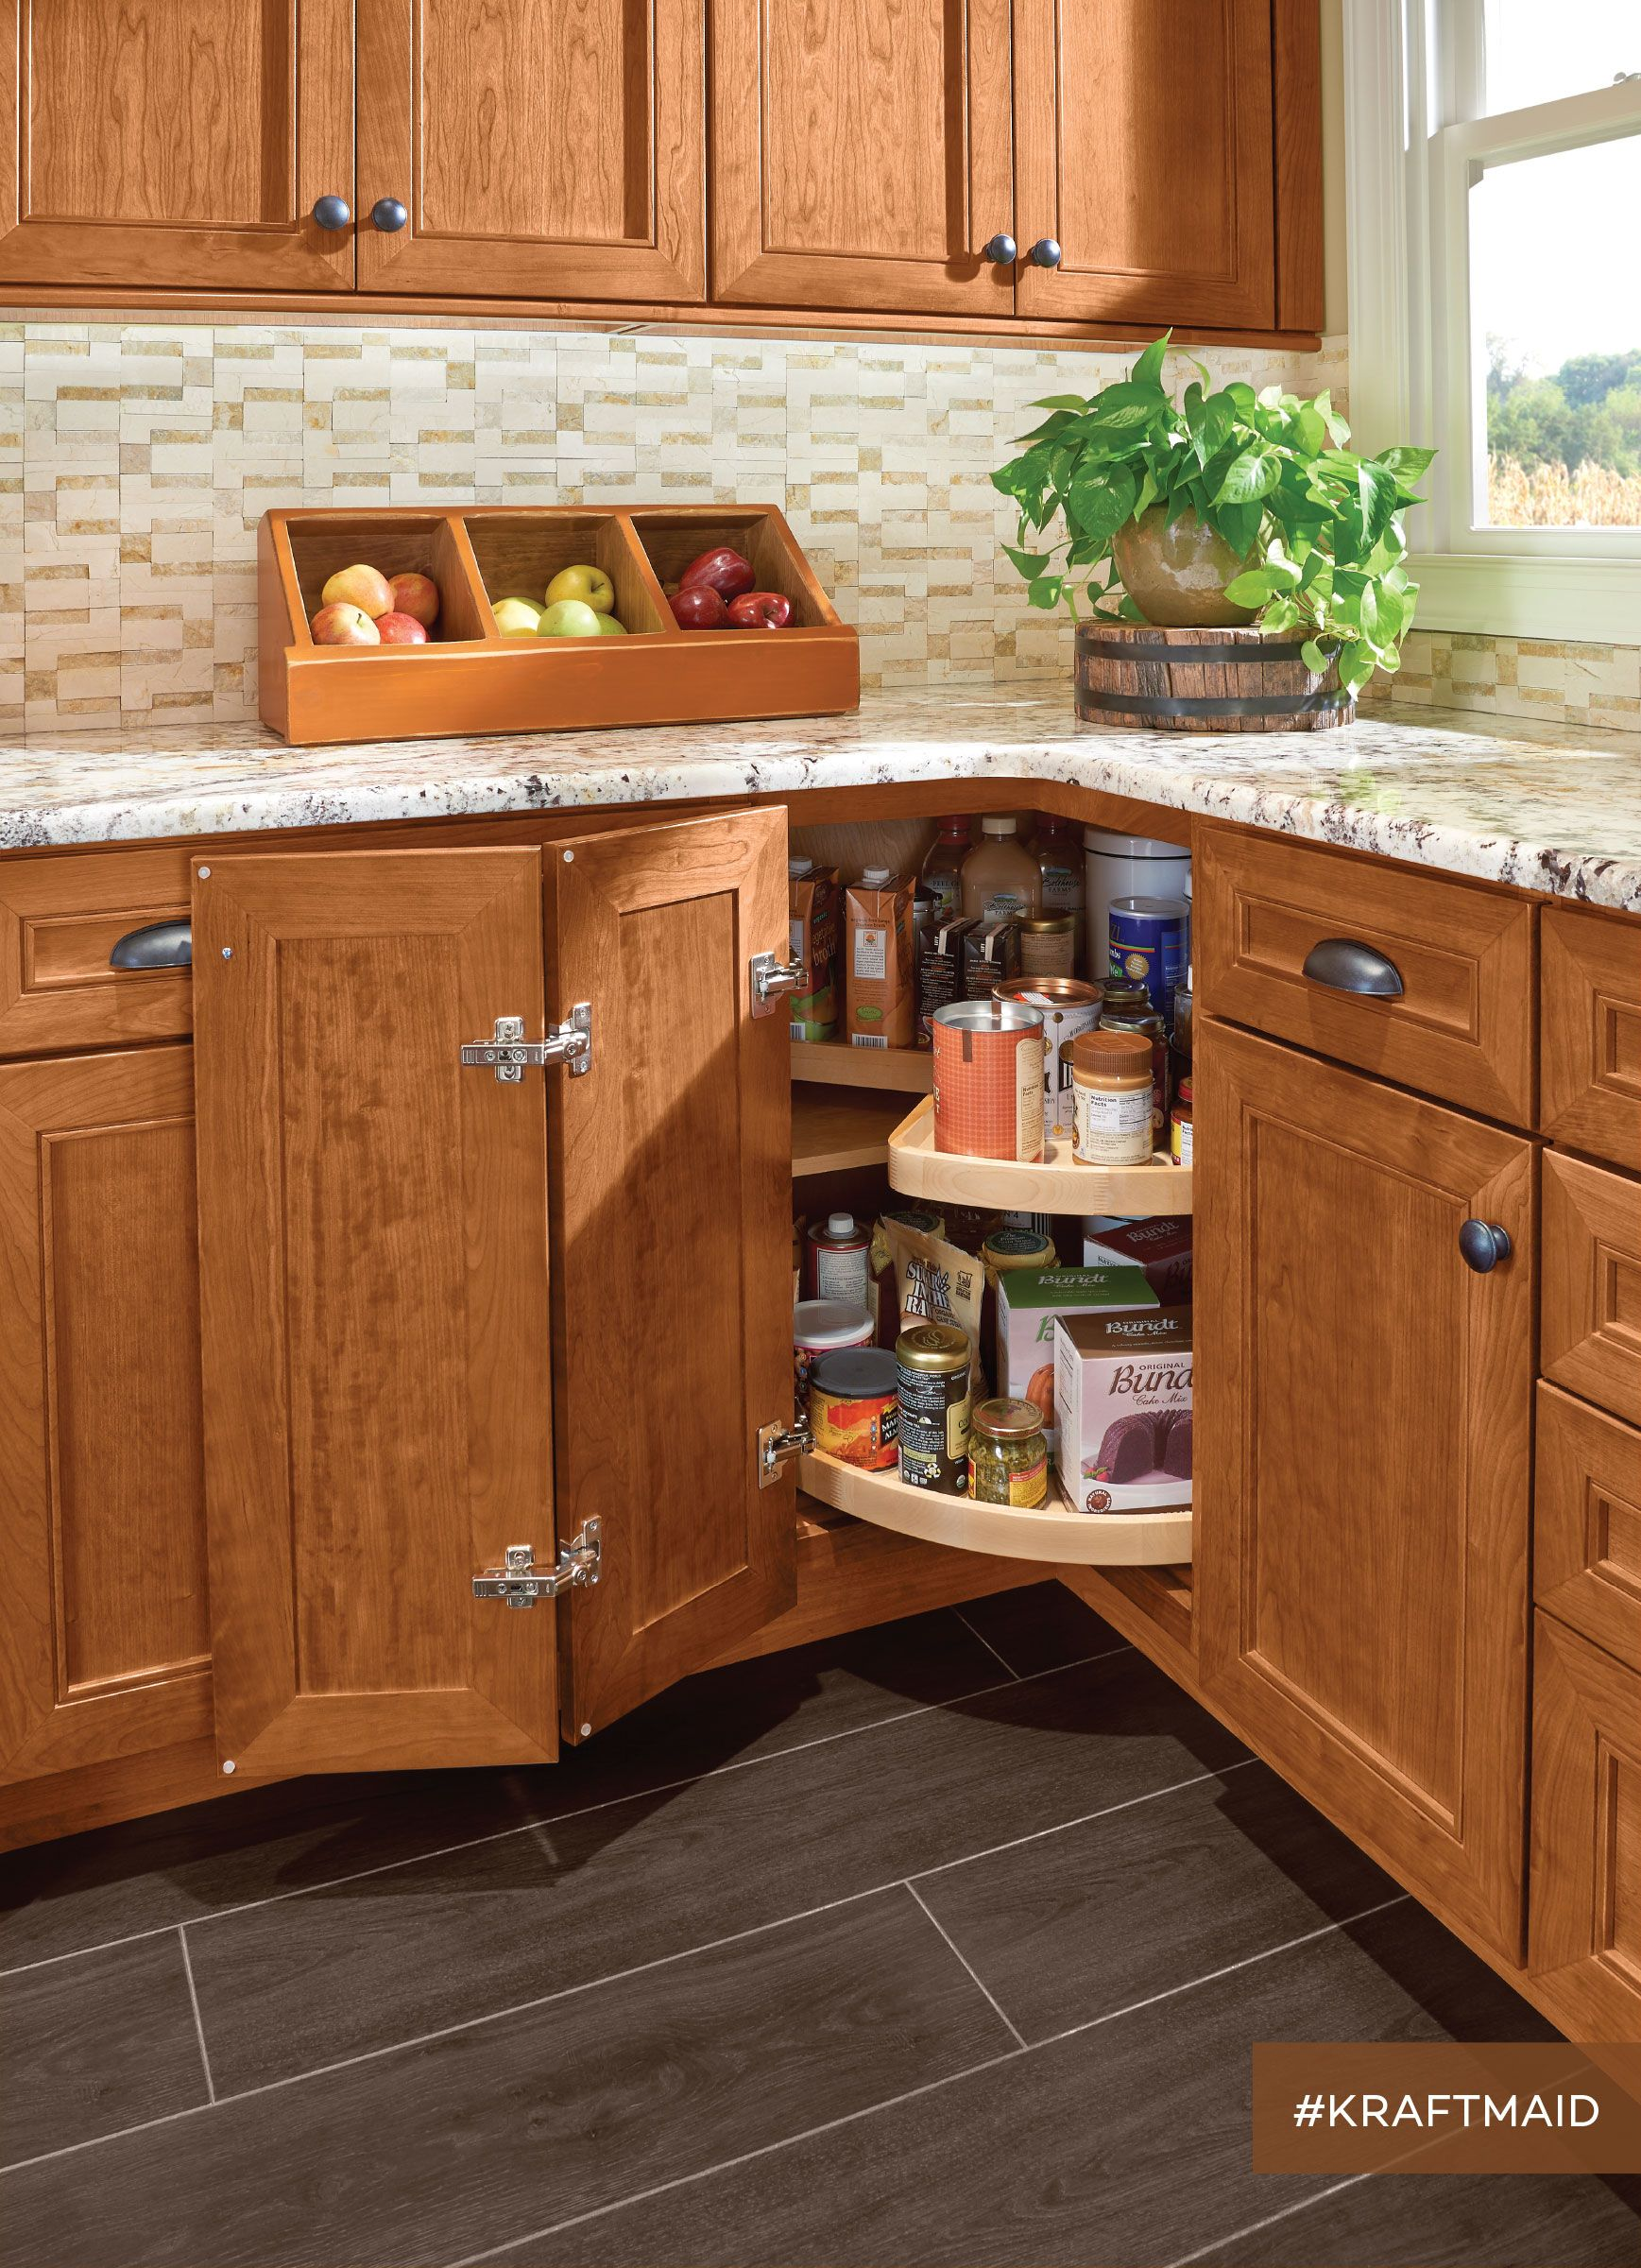 The Base Cabinet Shelves In The Wood Super Susan Revolve Independently For Easier Access To